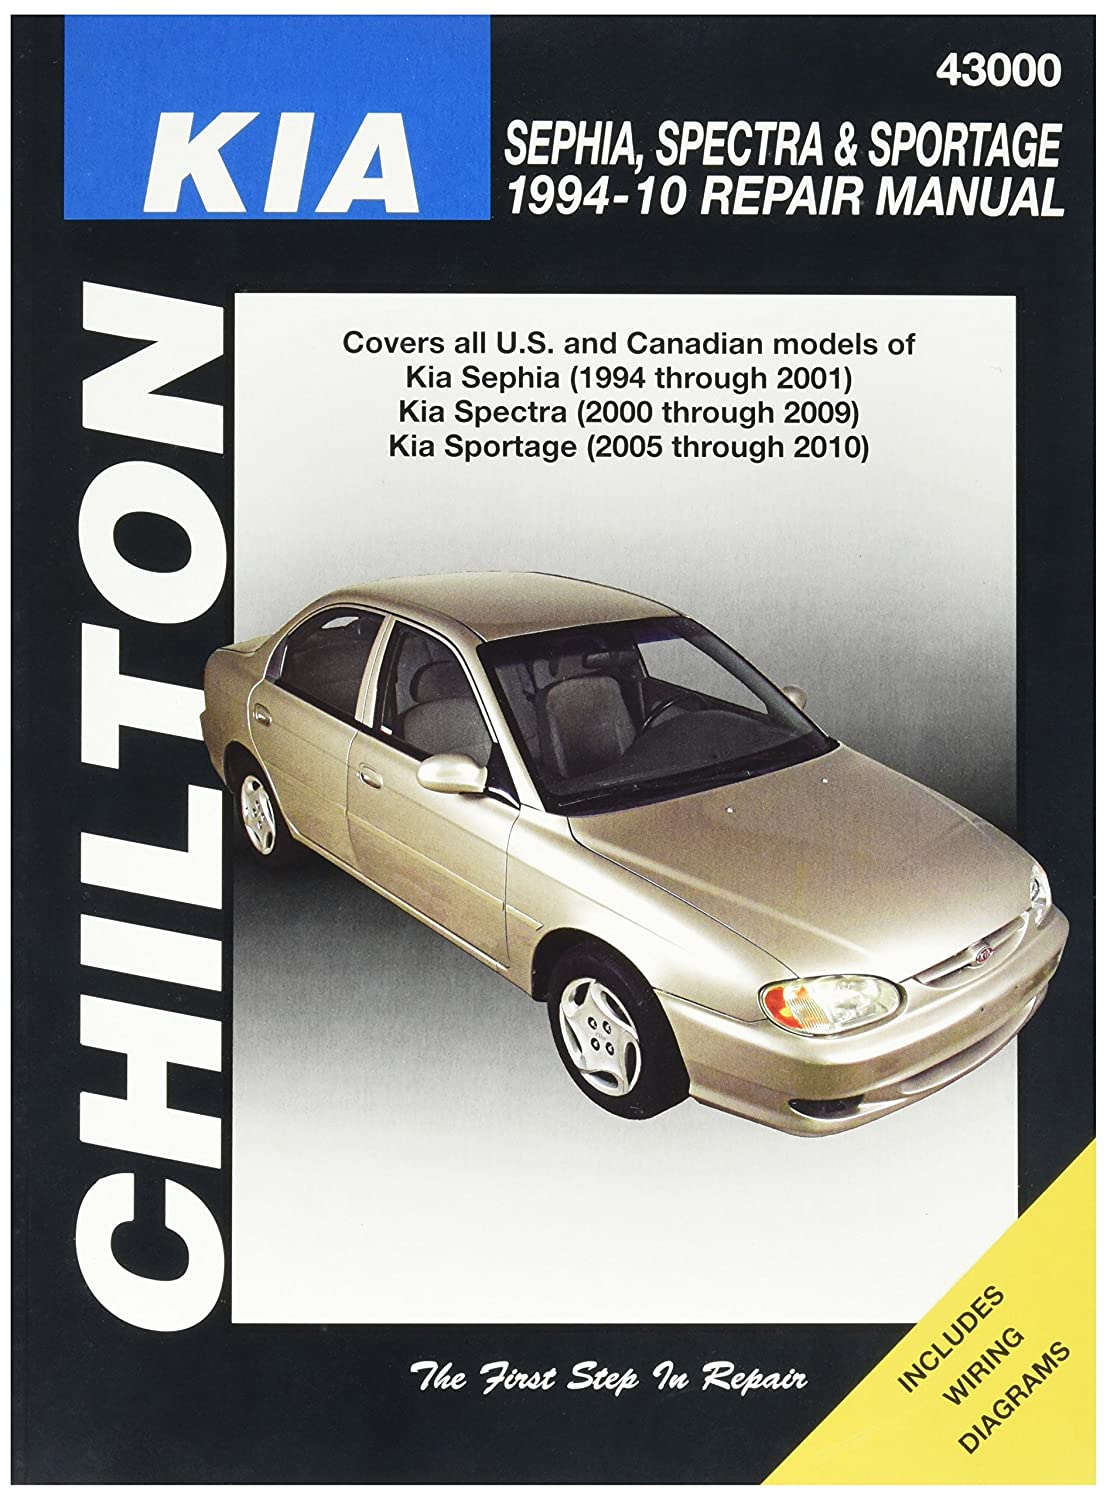 91mhk VLAWL._SL1500_ amazon com chilton kia repair manual automotive 2001 Kia Sportage Wiring-Diagram at gsmx.co